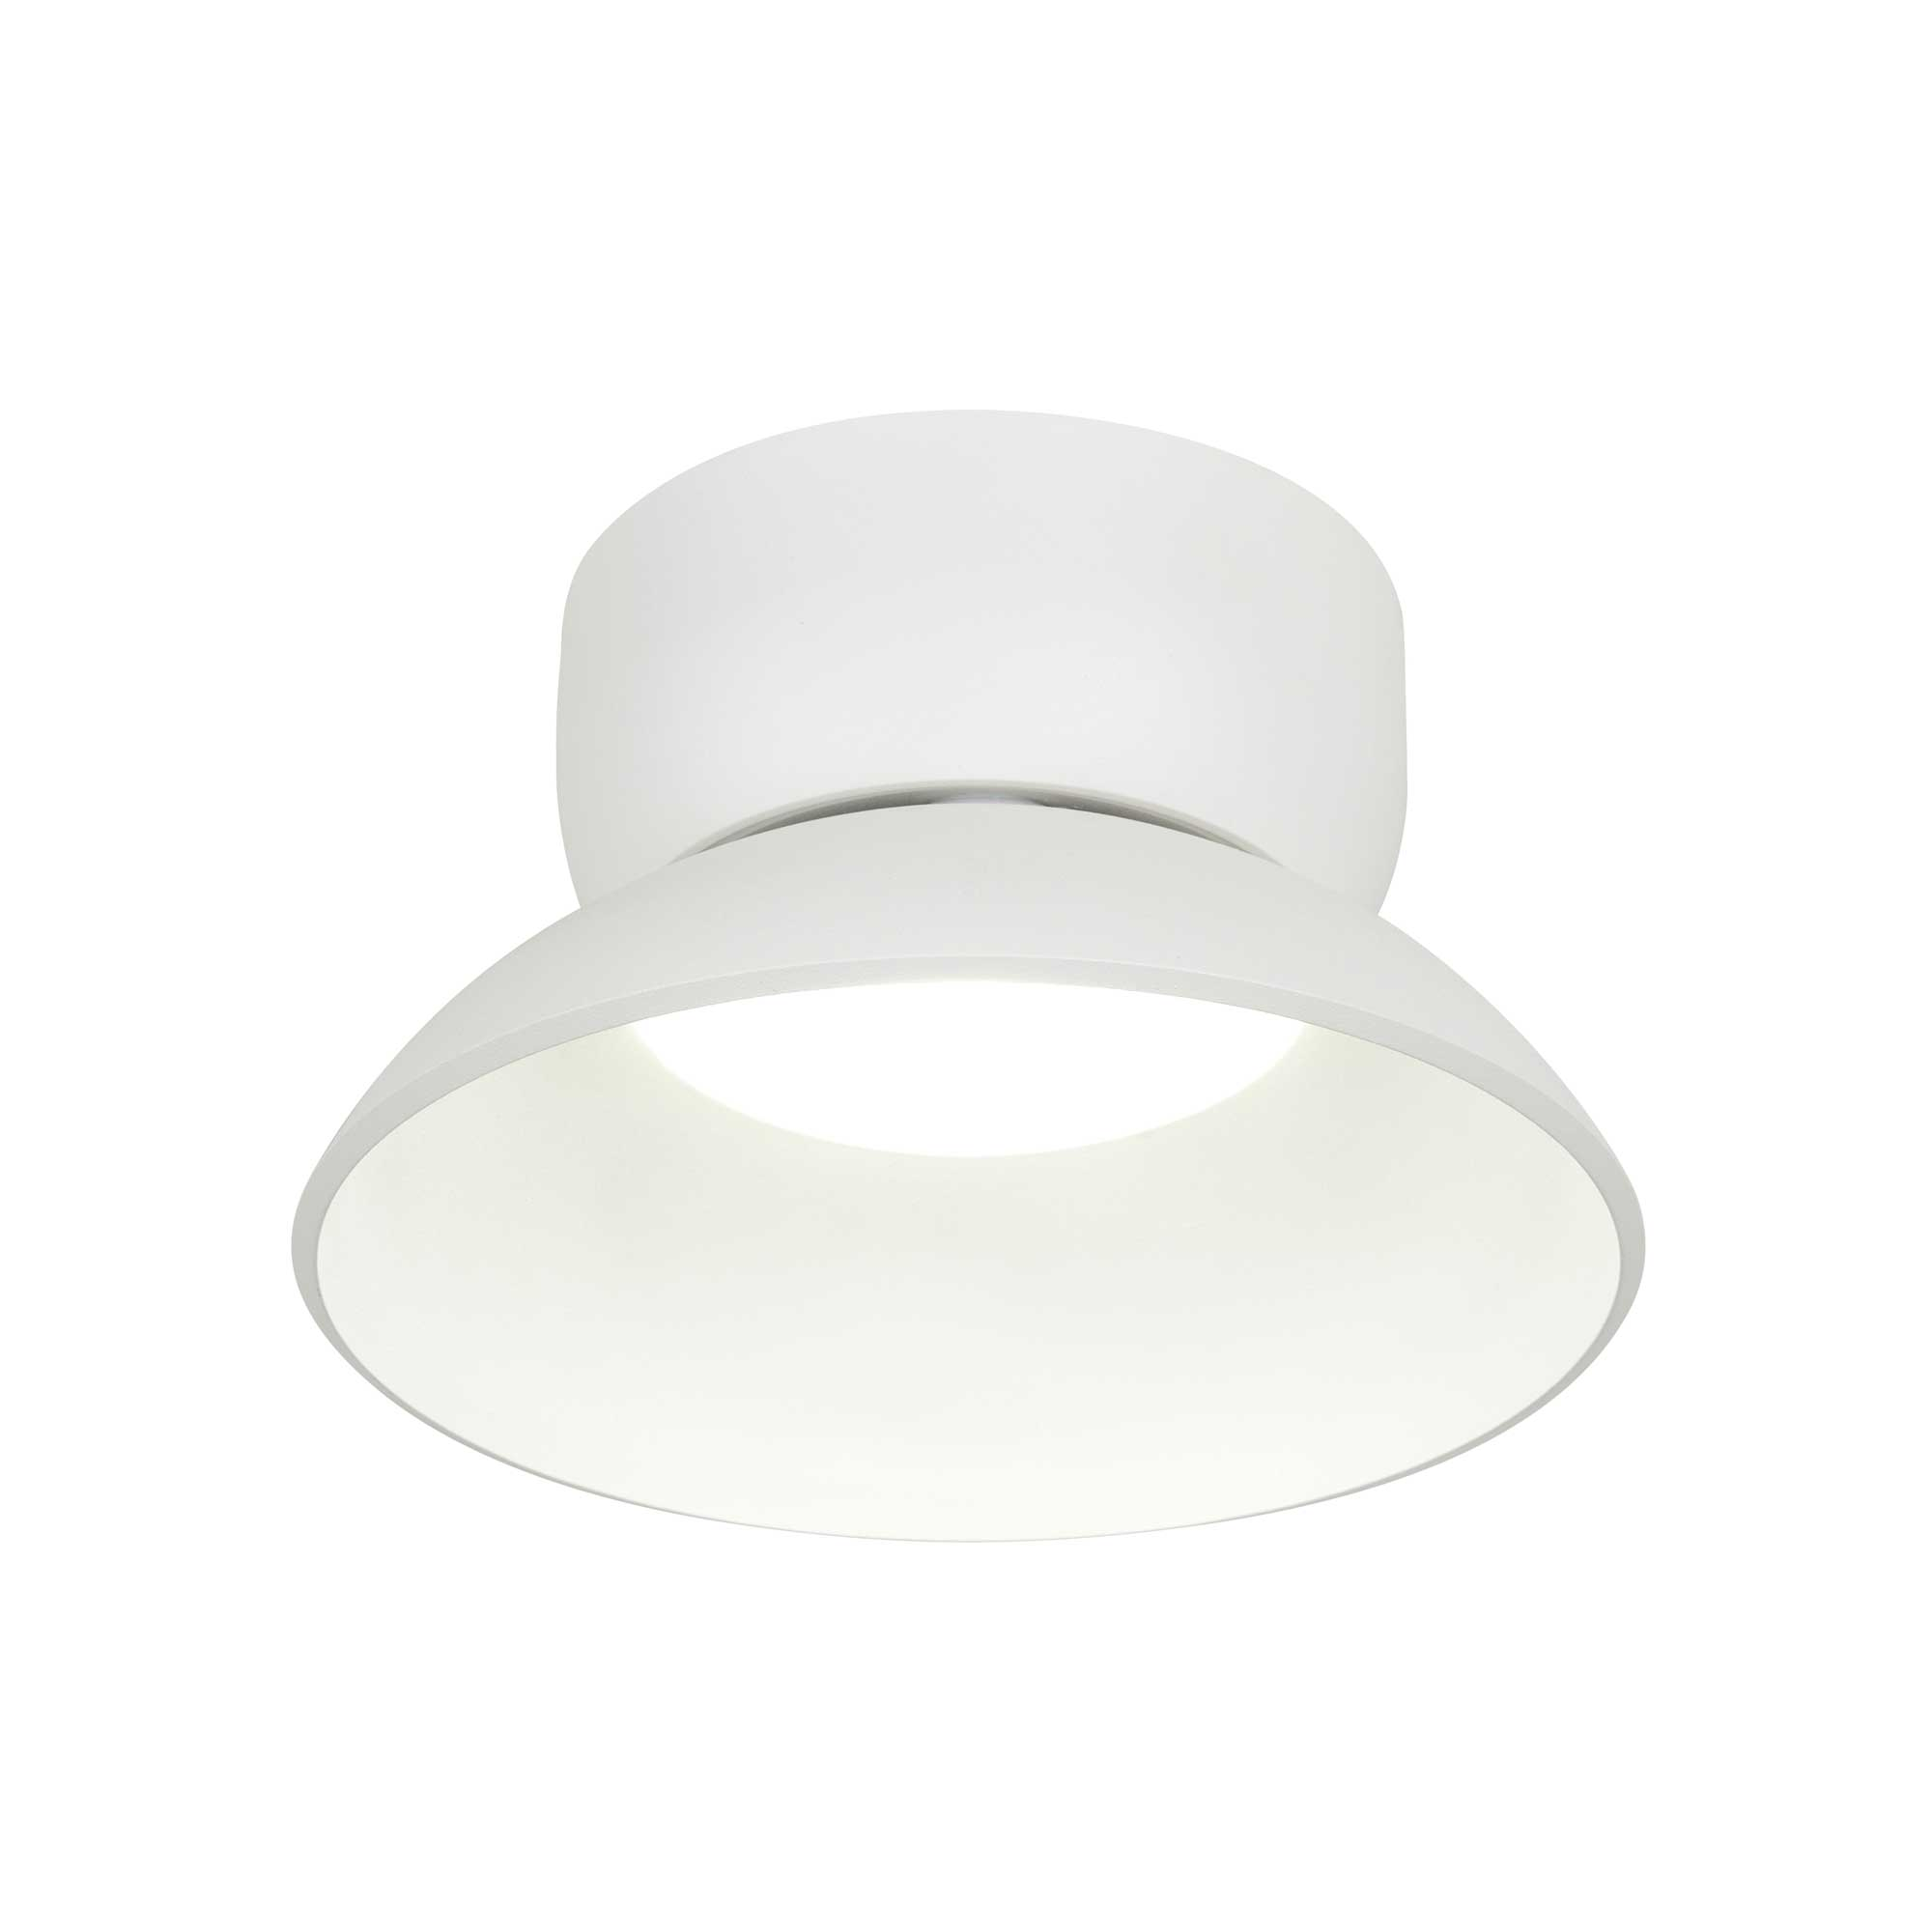 Bol ceiling light by pureedge lighting bol c 15w 30k wh aloadofball Image collections